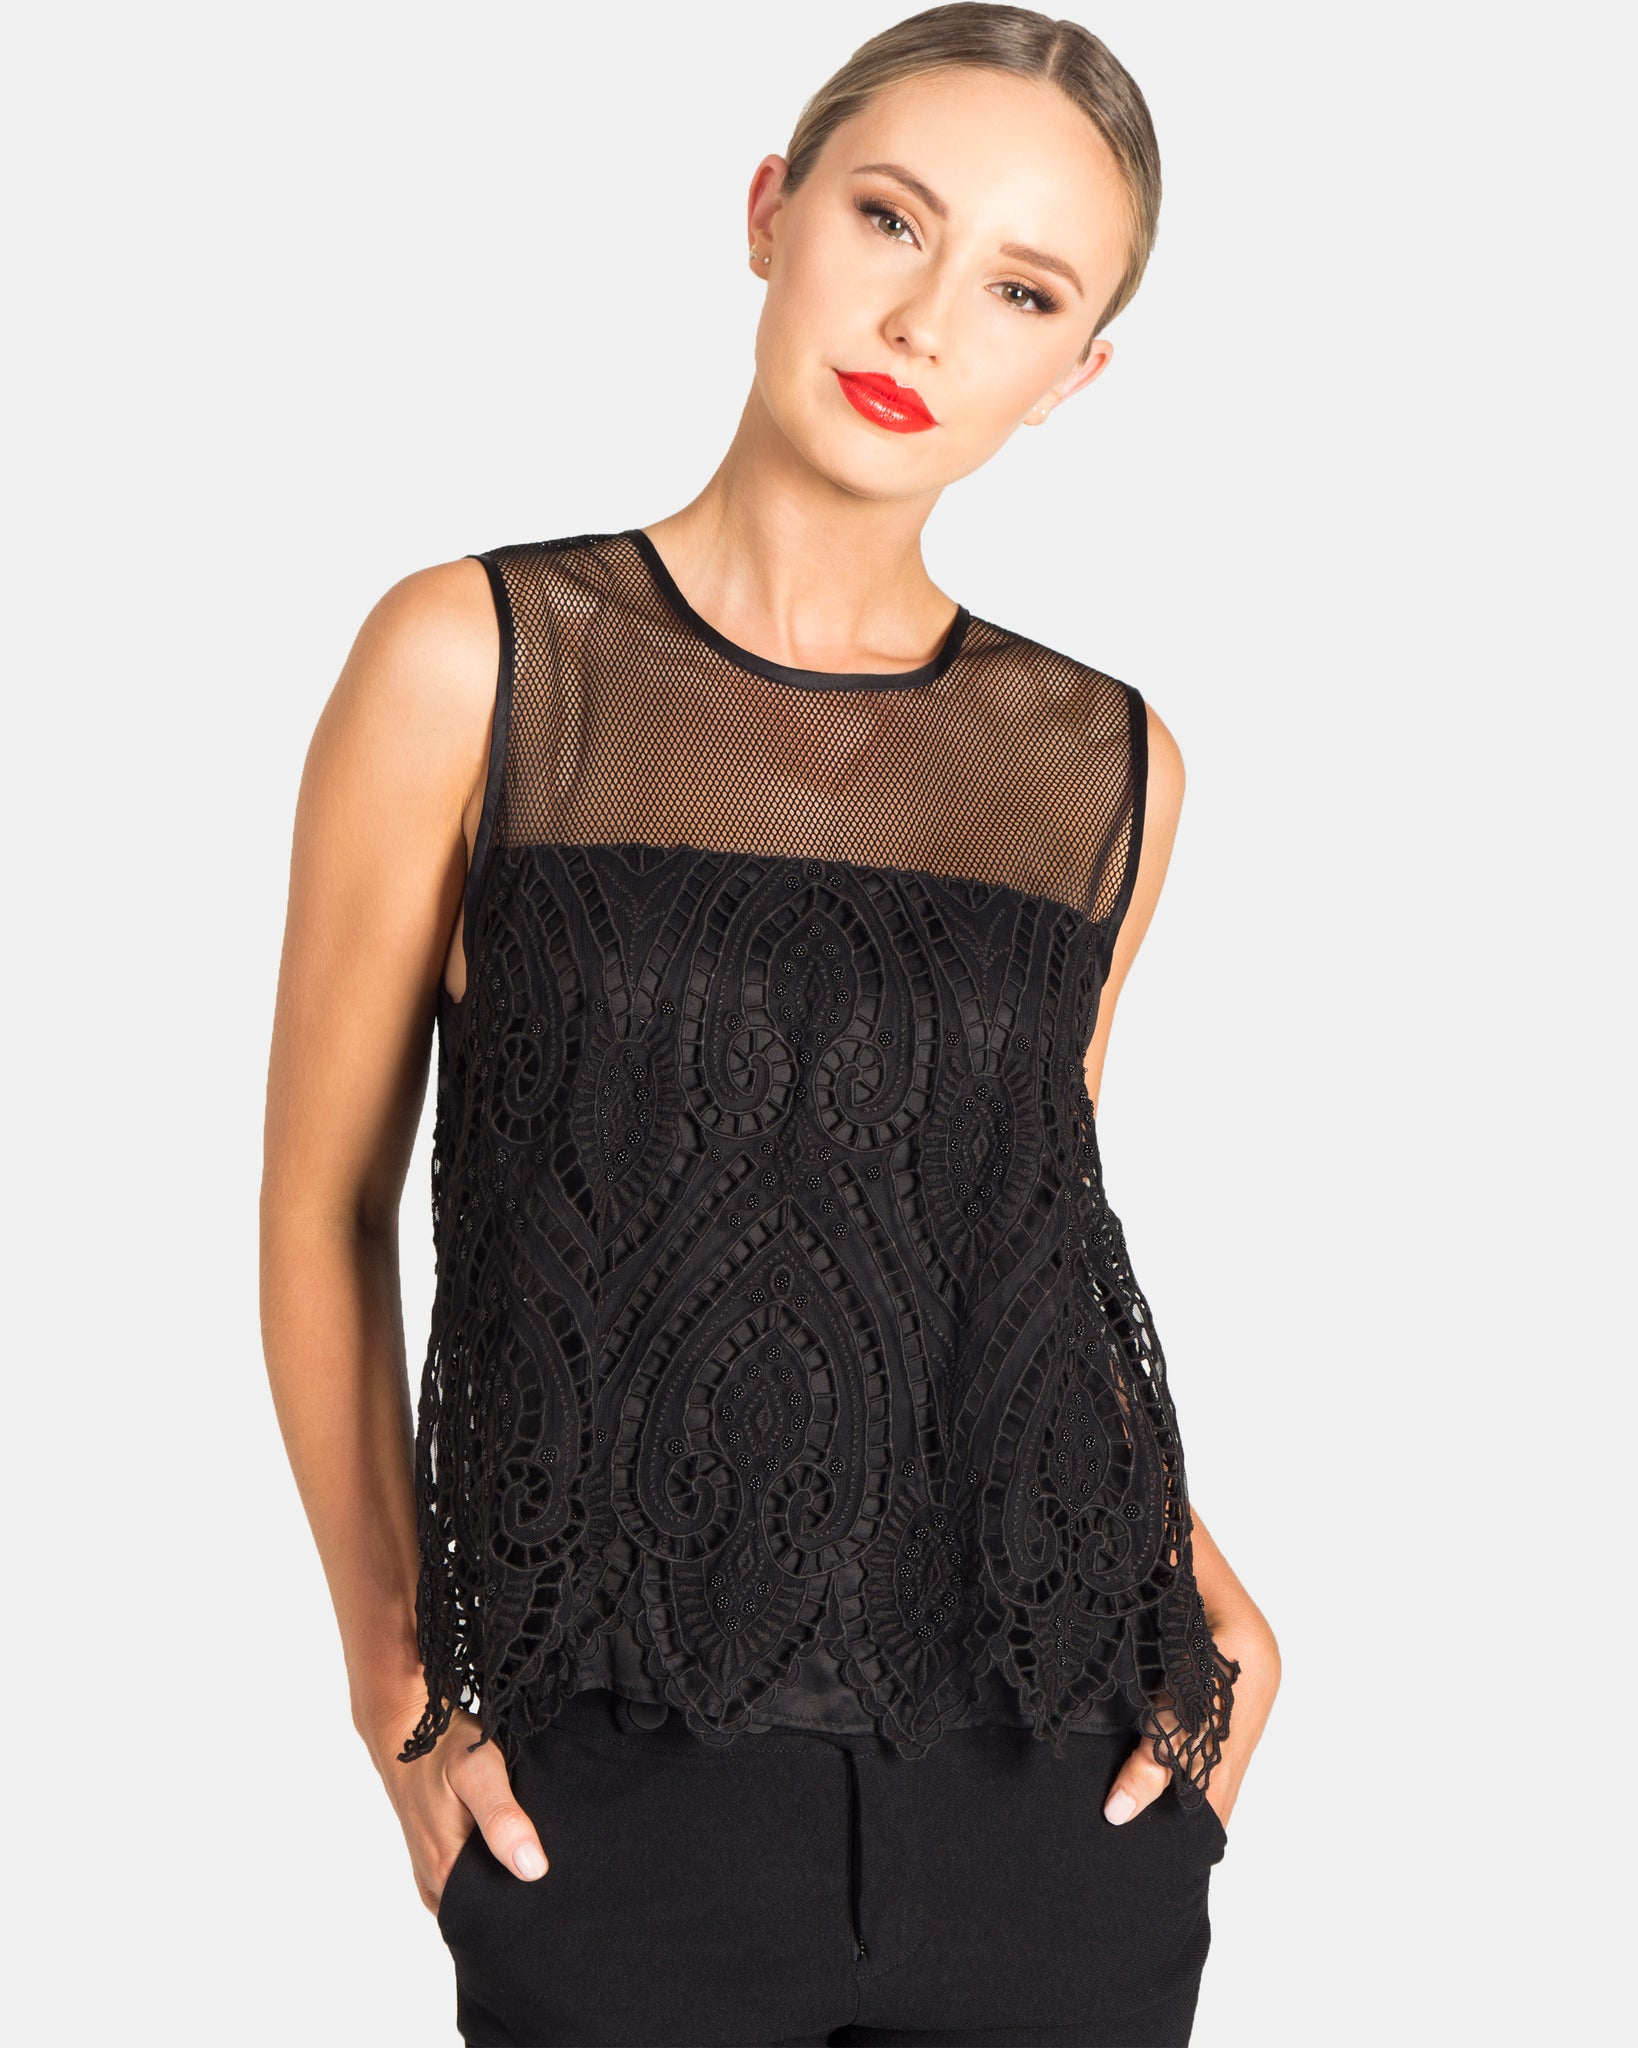 BEADED EMBROIDERED CUT OUT PAISLEY TOP